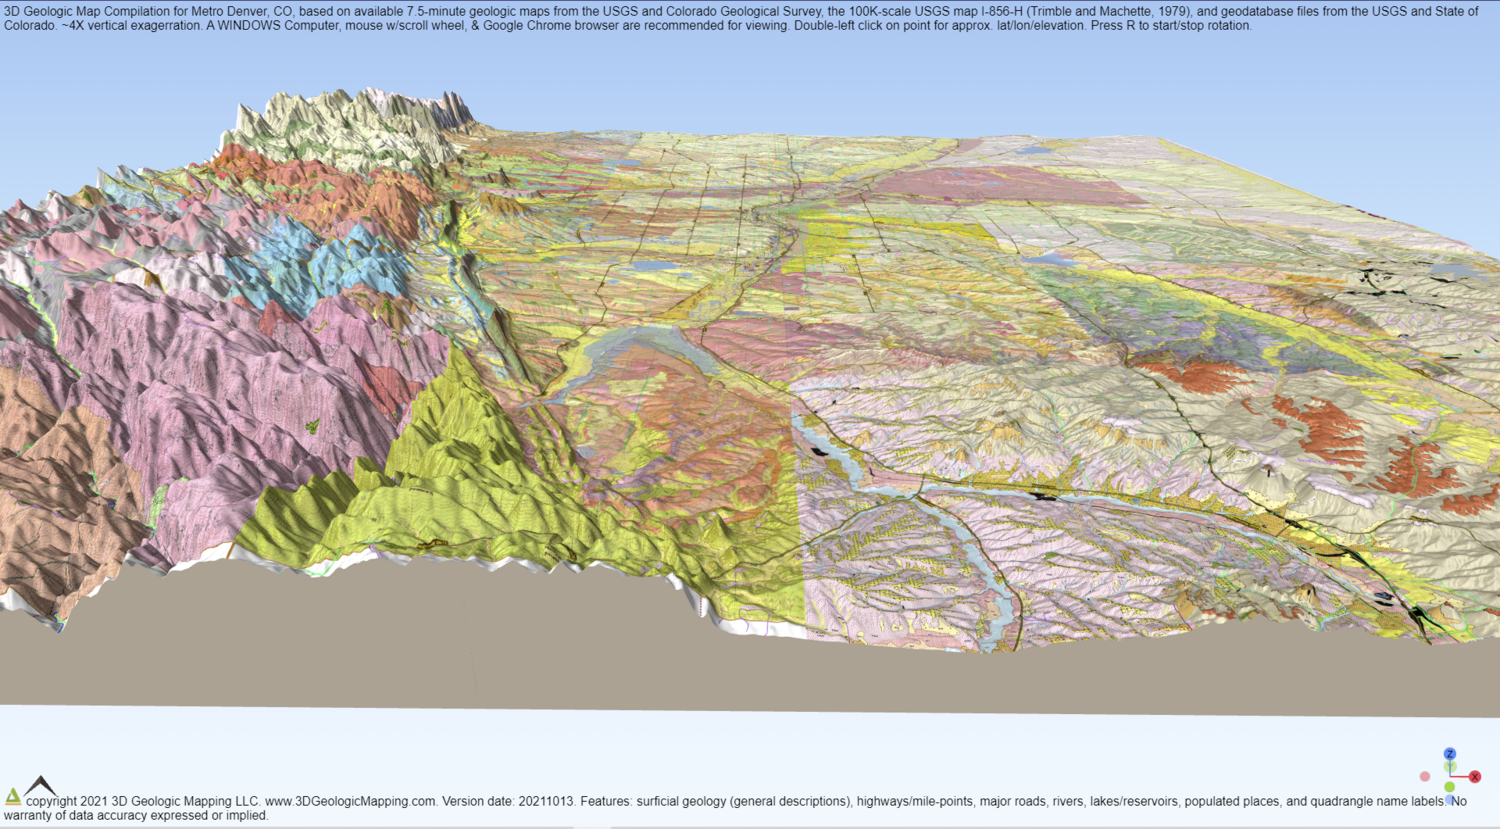 Detailed 2D and 3D Geologic Maps of Metro Denver (2 files)